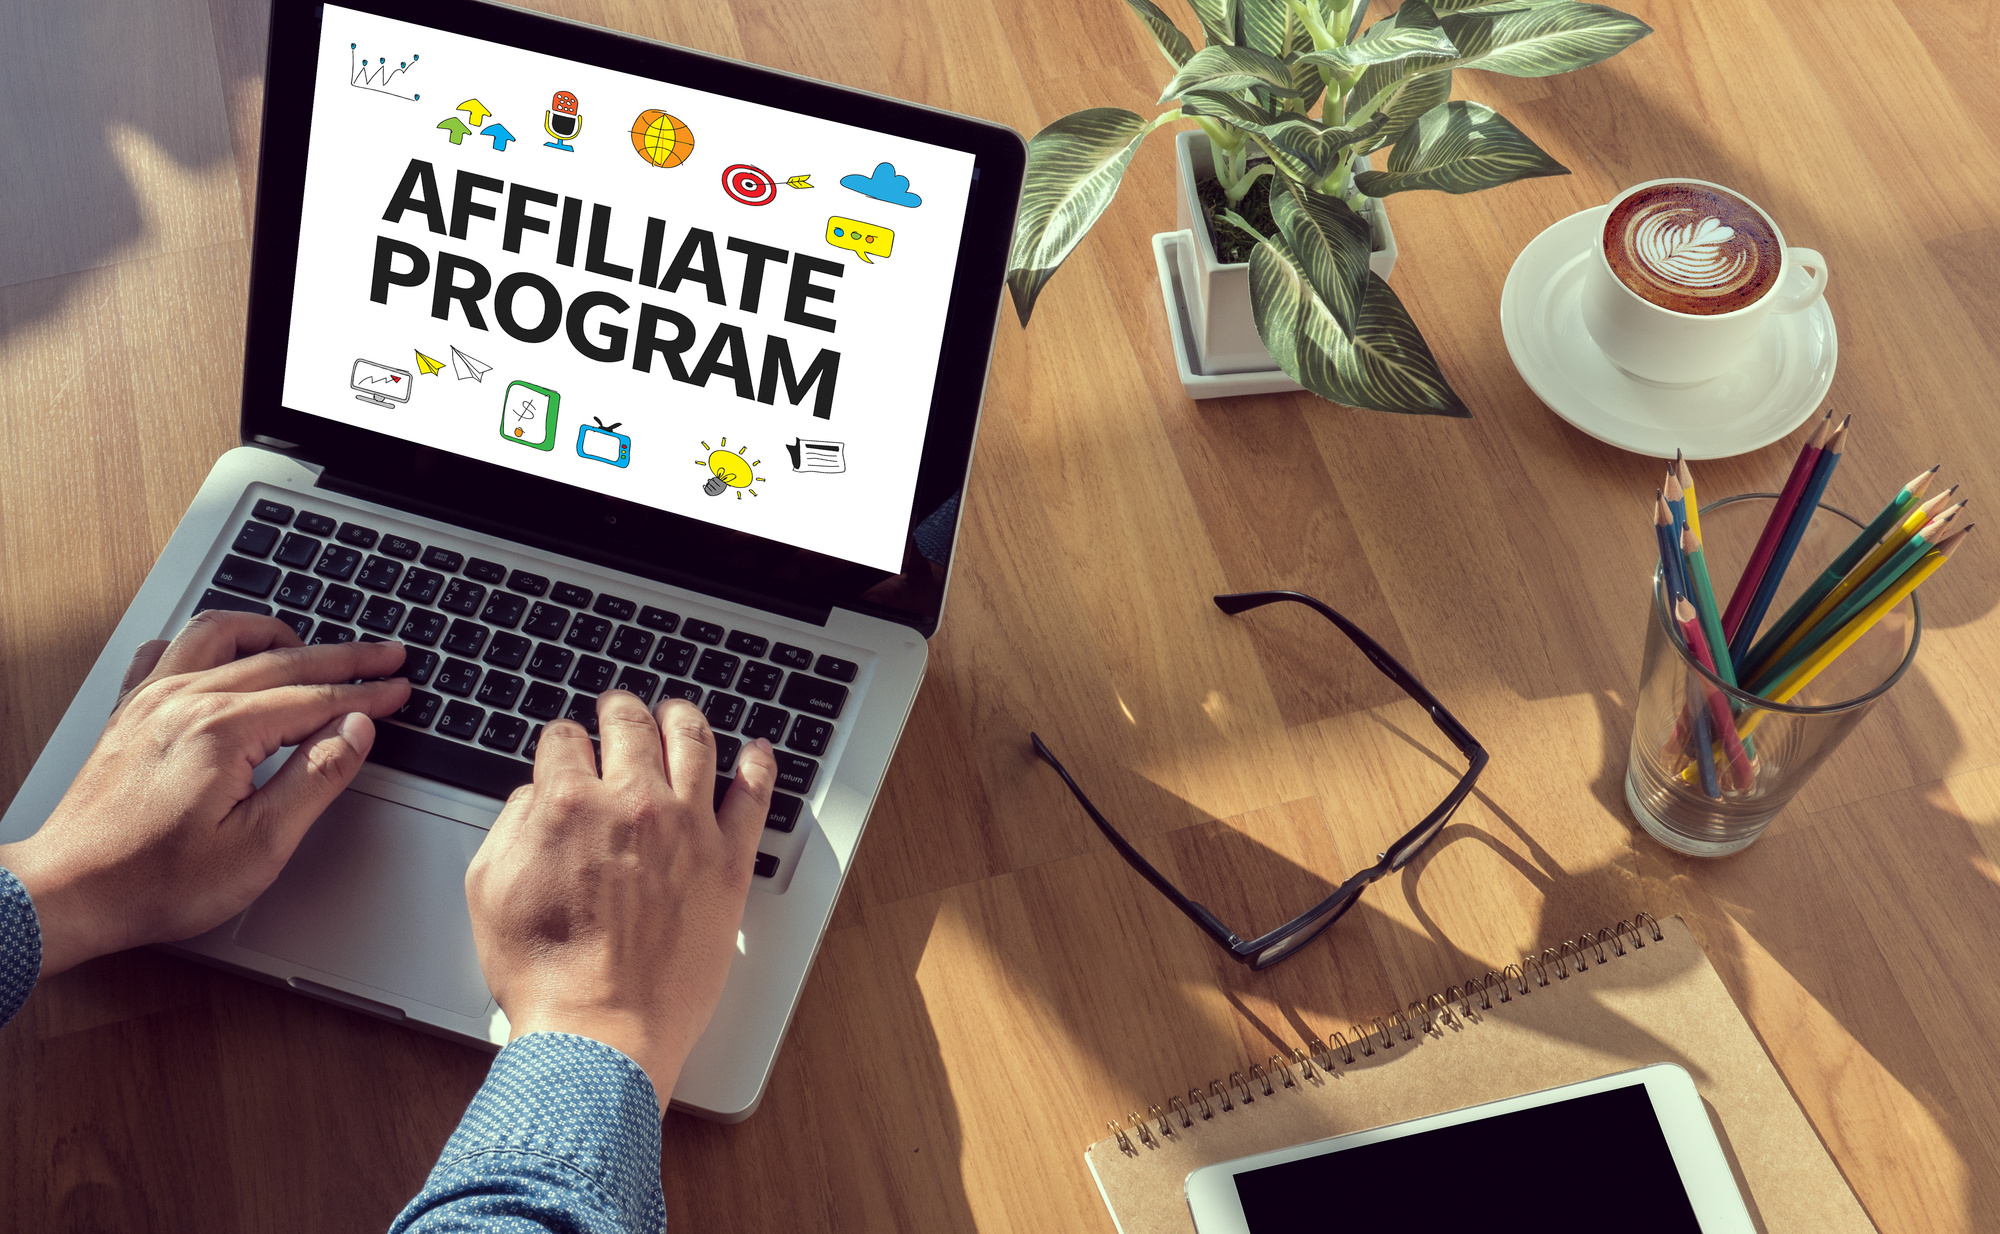 10 Affiliate Tips to Make Your Online Business Soar